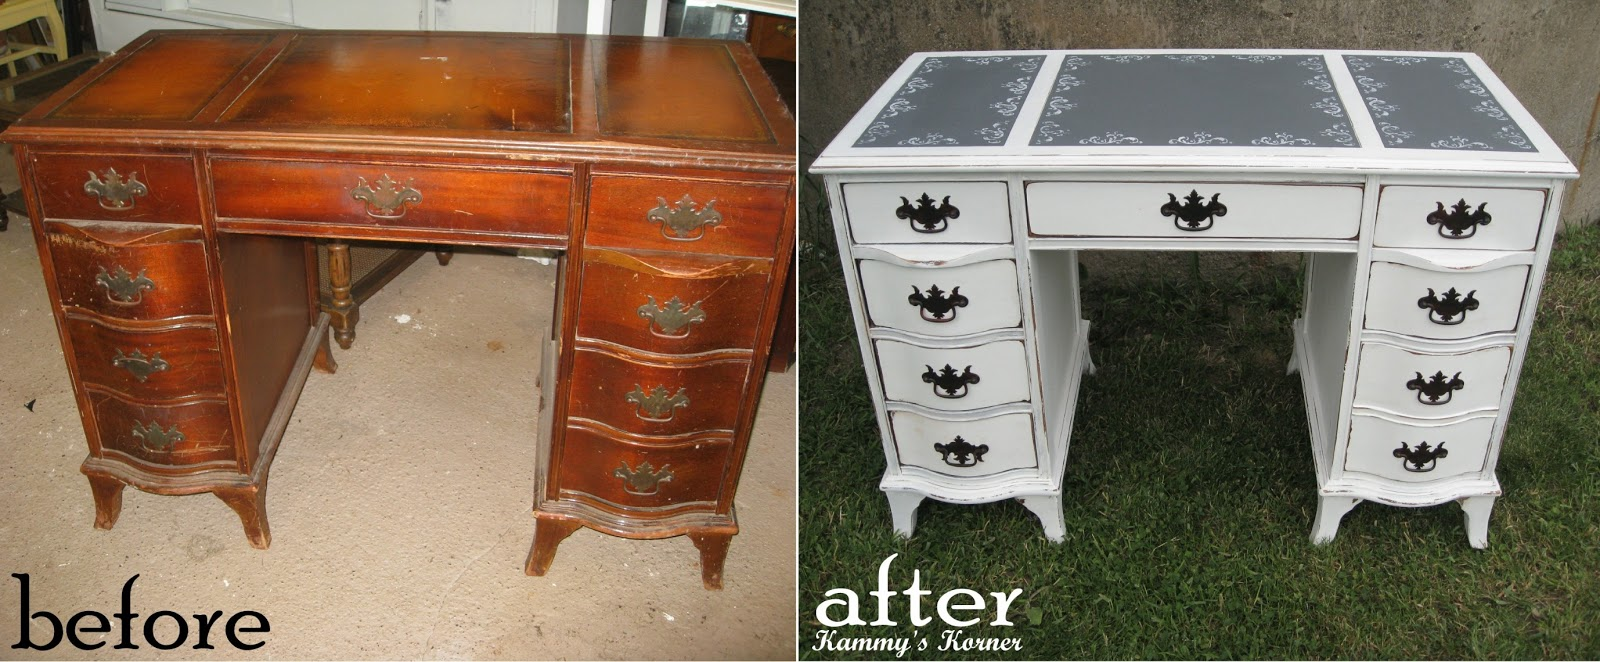 Shabby Chic Desk With Chalkboard Inserts Before And After